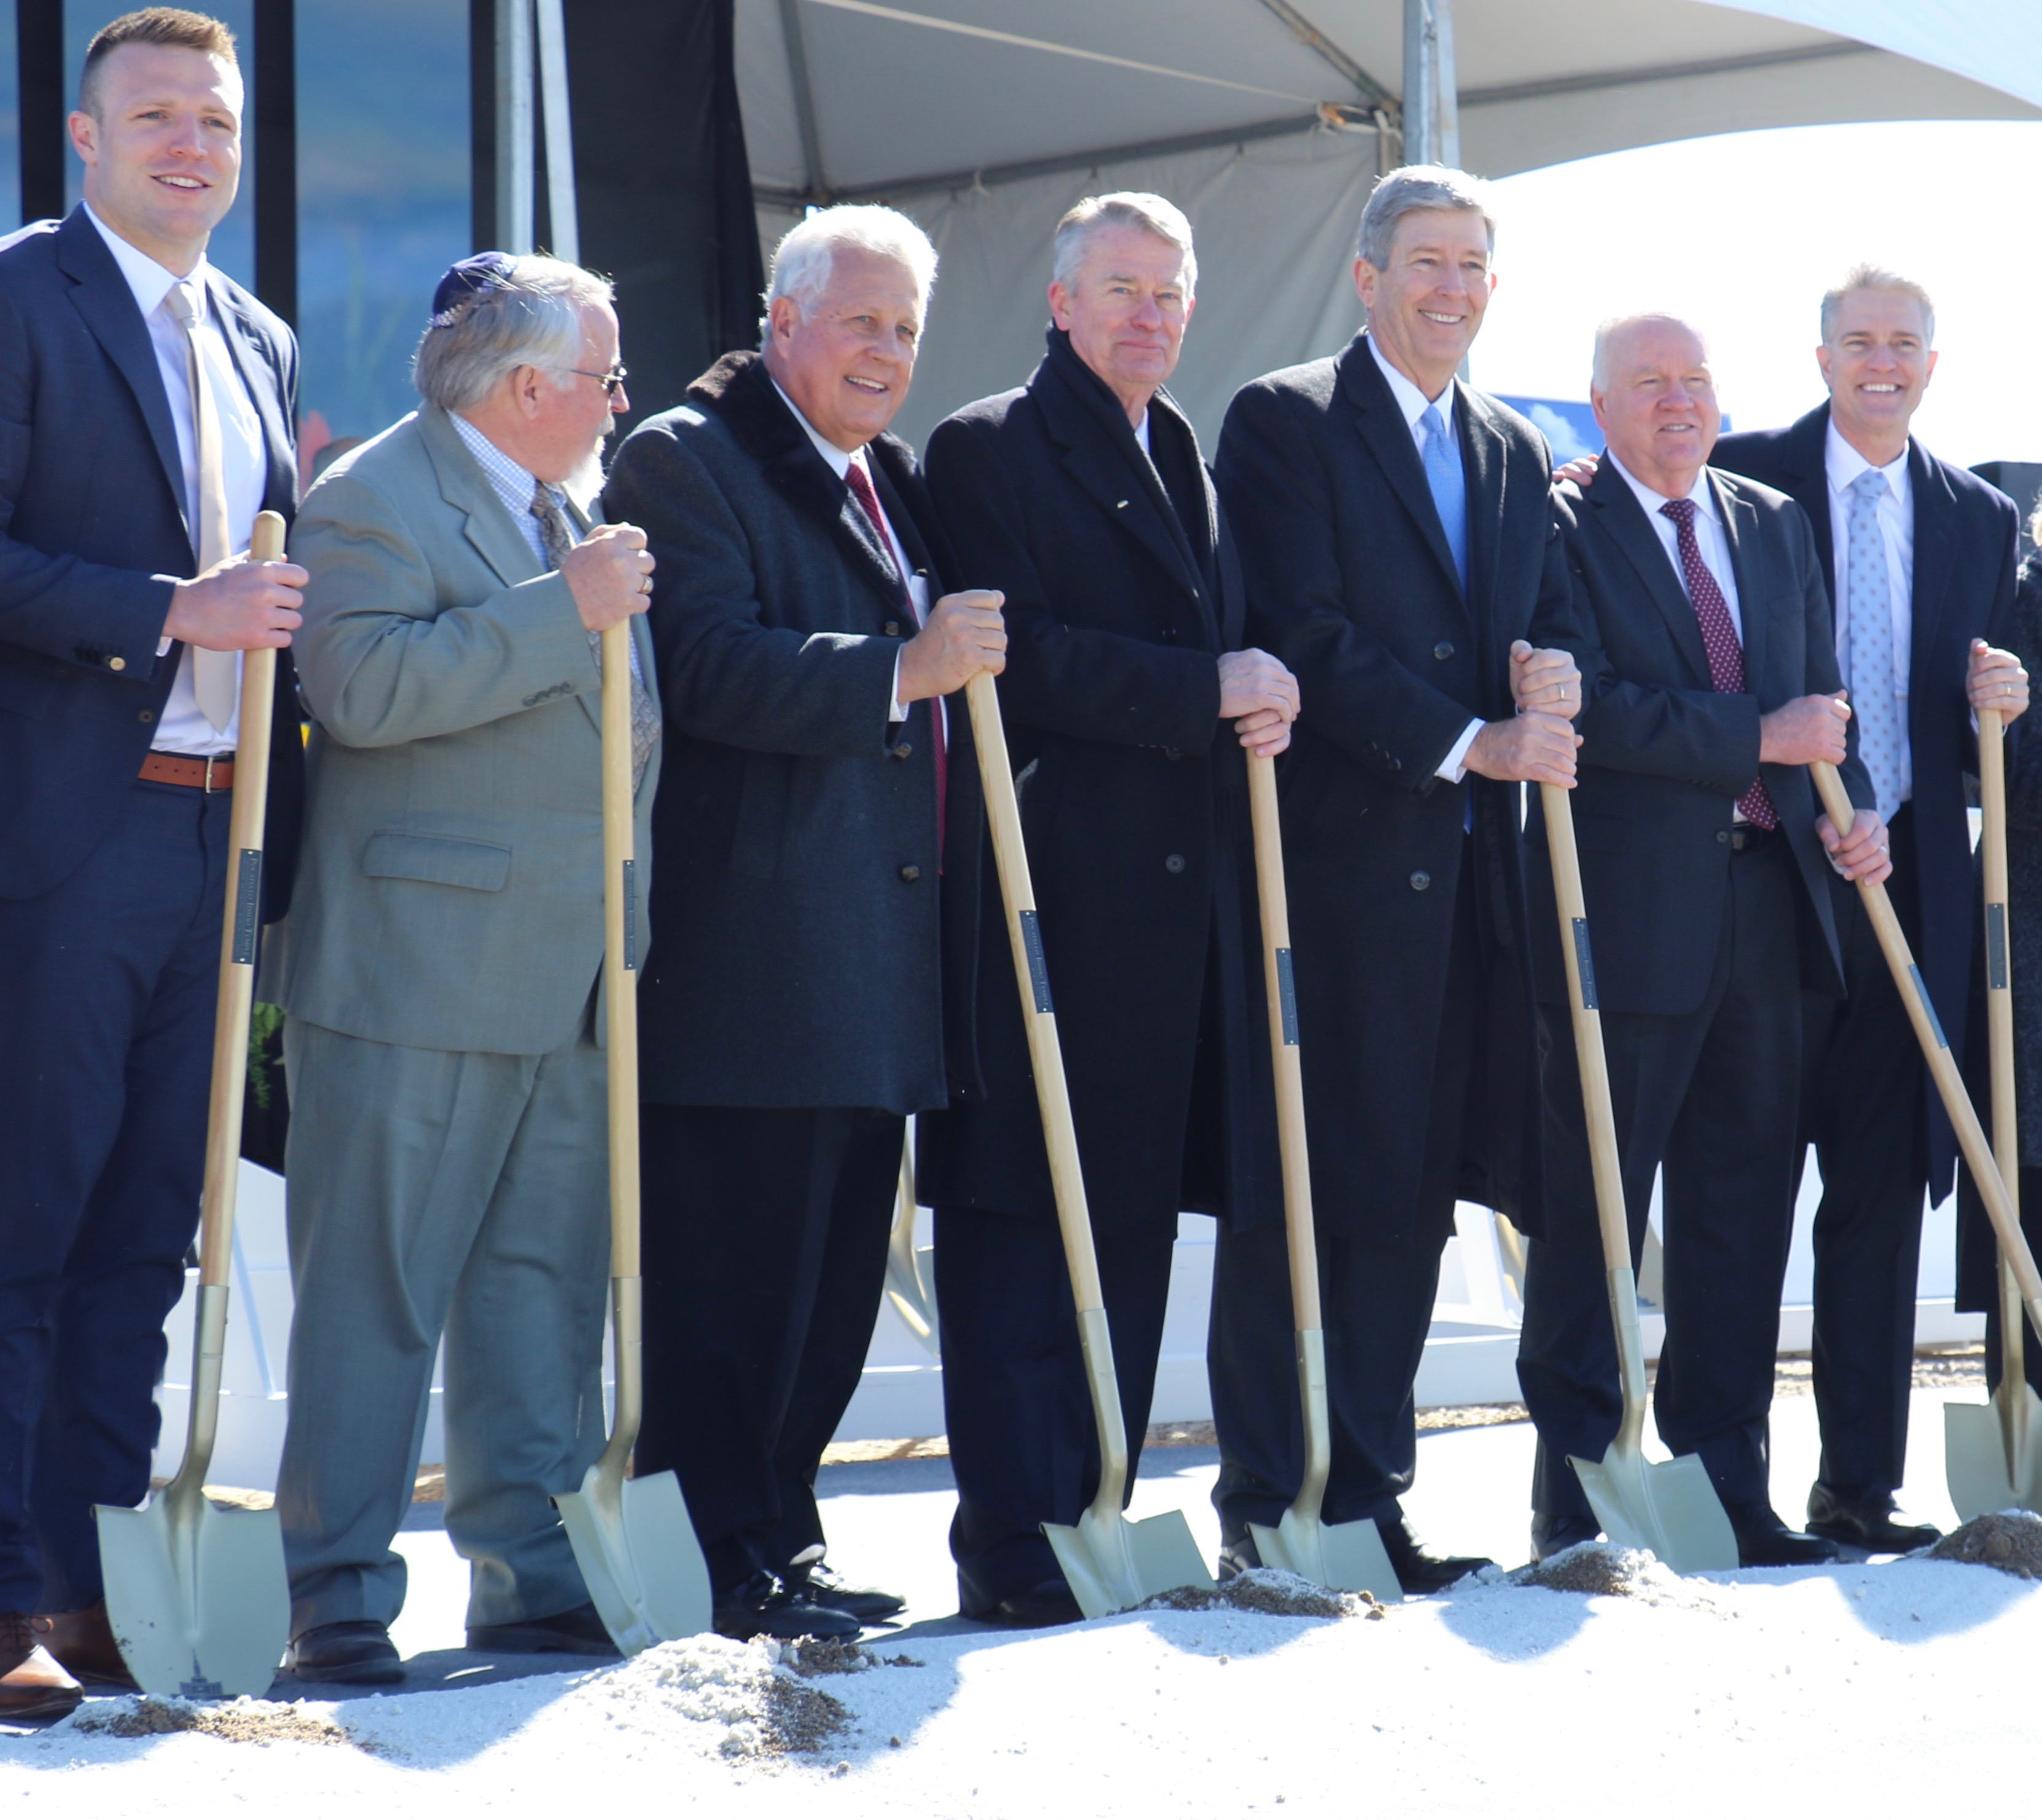 A collection of representatives from religious, civic and athletic communities turn over ceremonial shovels of soil at the March 16, 2019, groundbreaking service of the Pocatello Idaho Temple. Participants include football star Taysom Hill, Idaho Governor Brad Little, Elder Wilford W. Andersen, Elder S. Gifford Nielsen and Elder Brian K. Taylor.